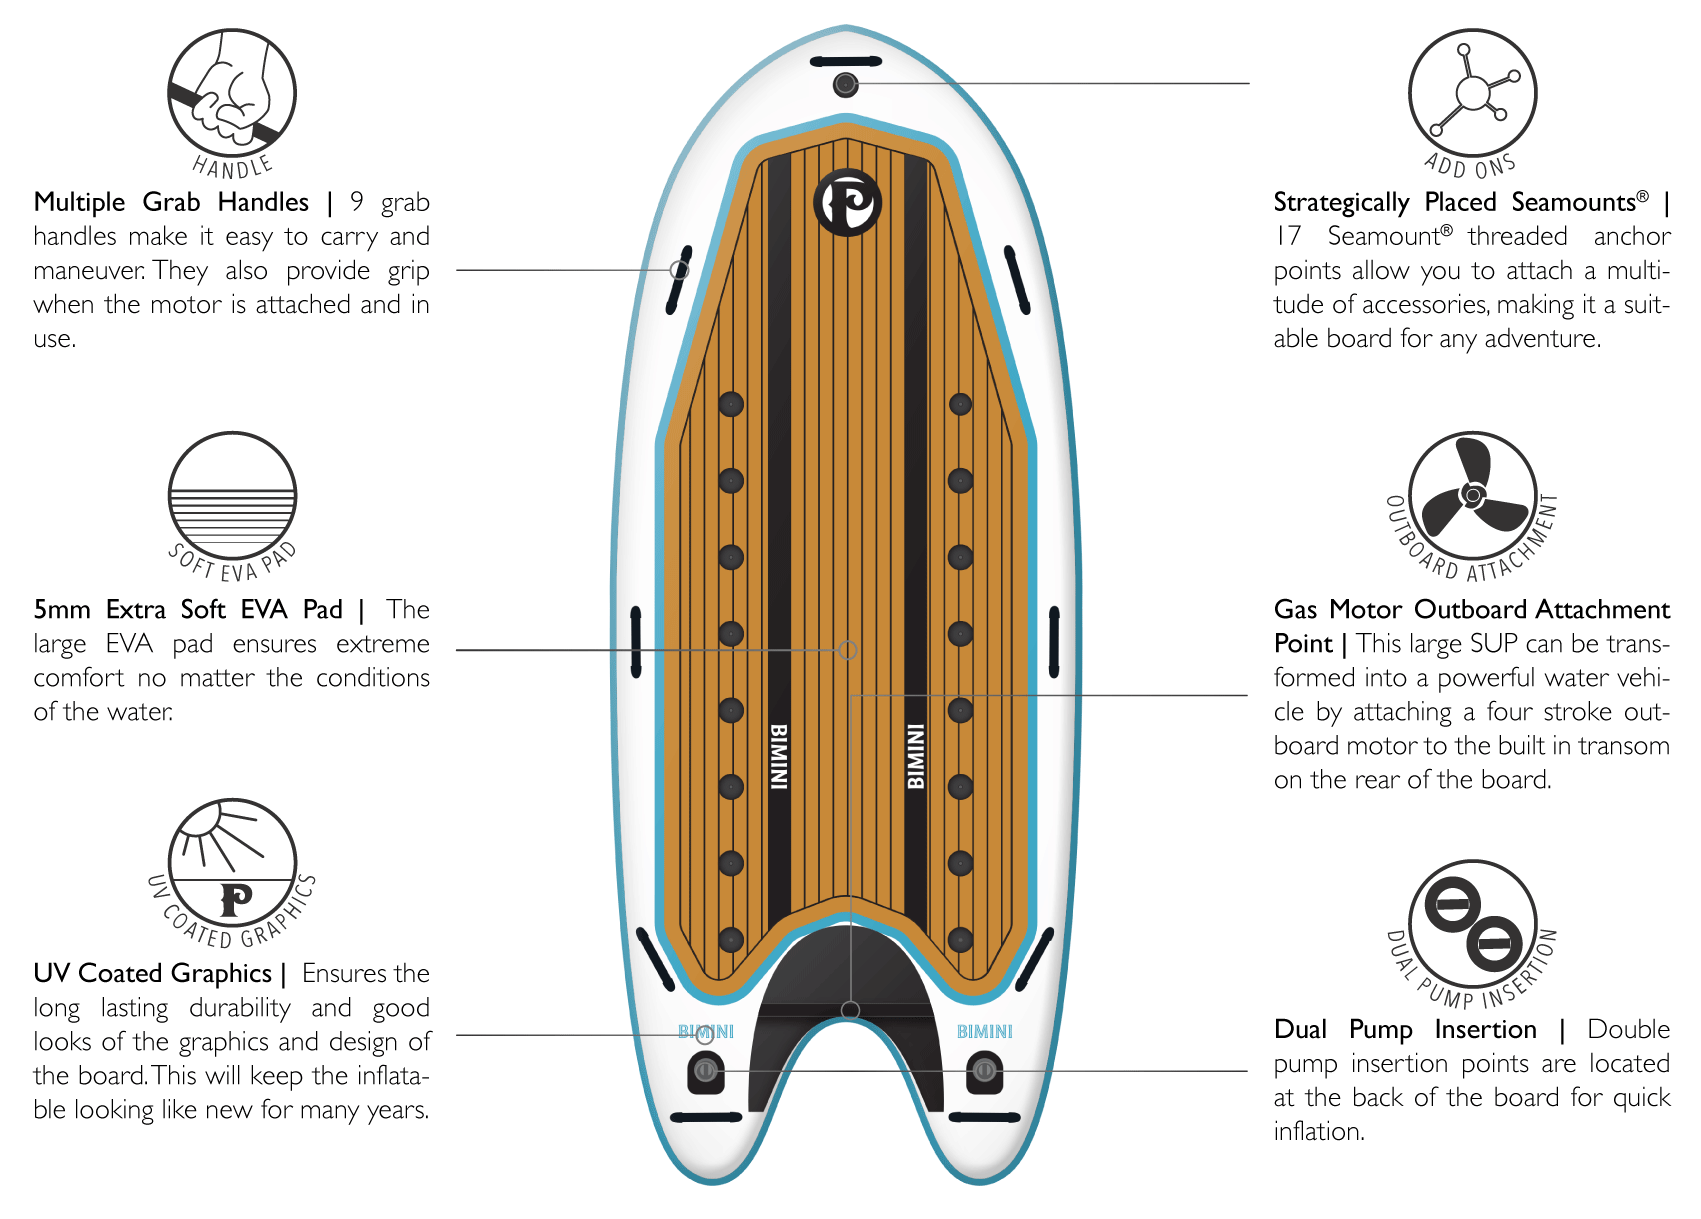 This is the best skiff board. board features of the Bimini inflatable paddle board 9 grab handles 5mm soft deck pad uv coated graphics strategically placed seamounts gas motor attachment dual pump insertion flap